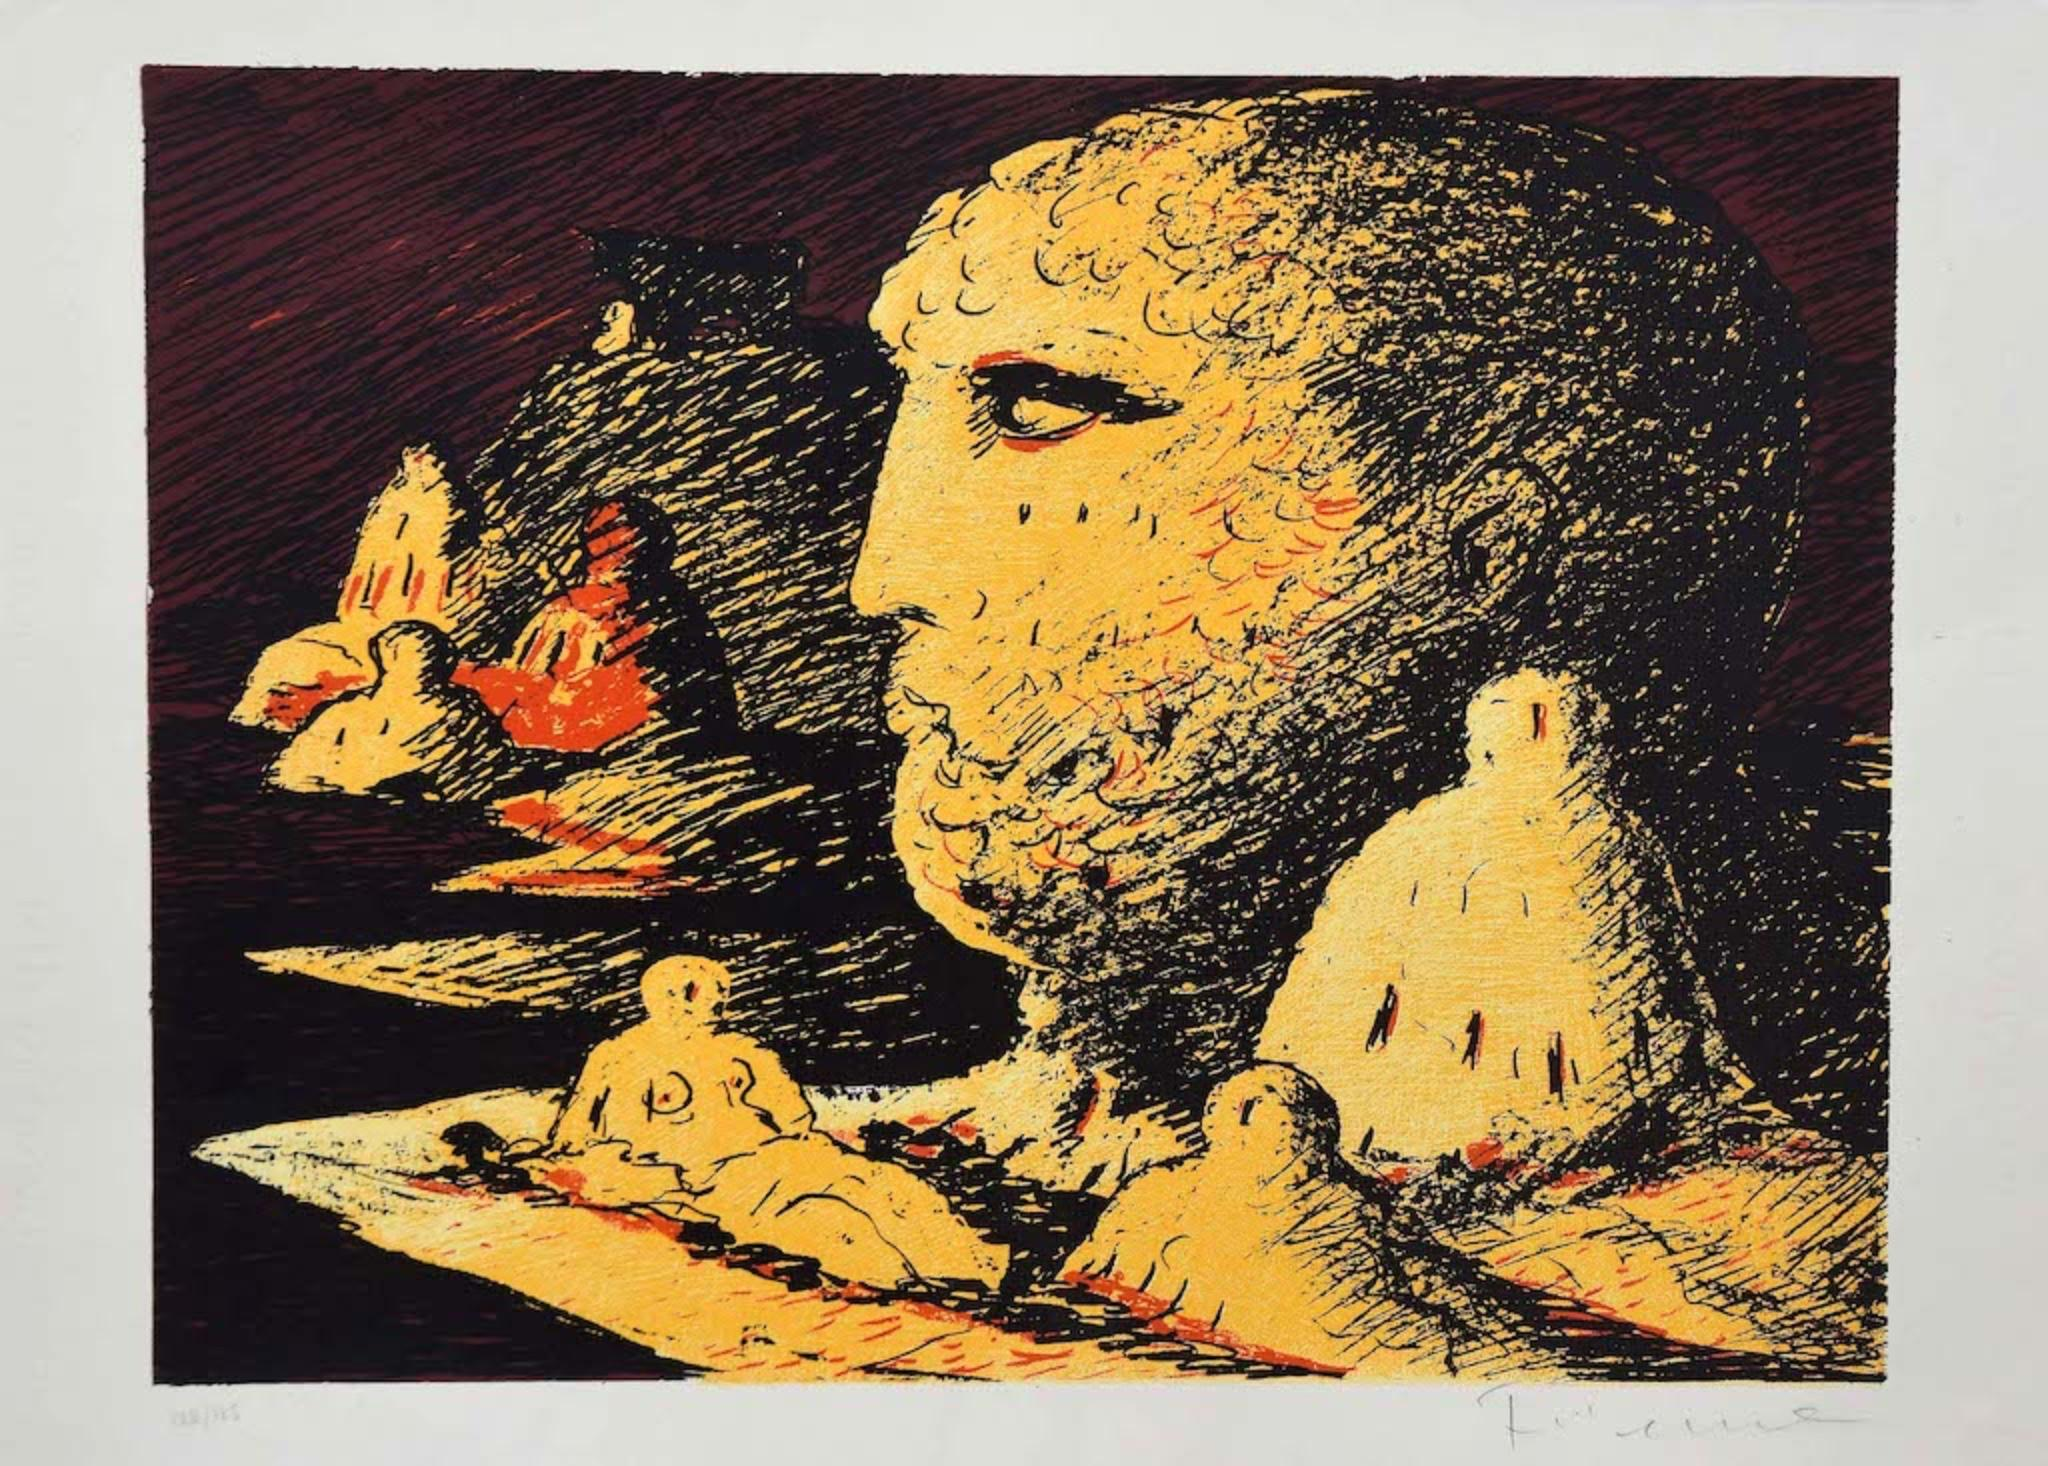 Figures - Original Screen Print by Salvatore Fiume - Late 20th Century